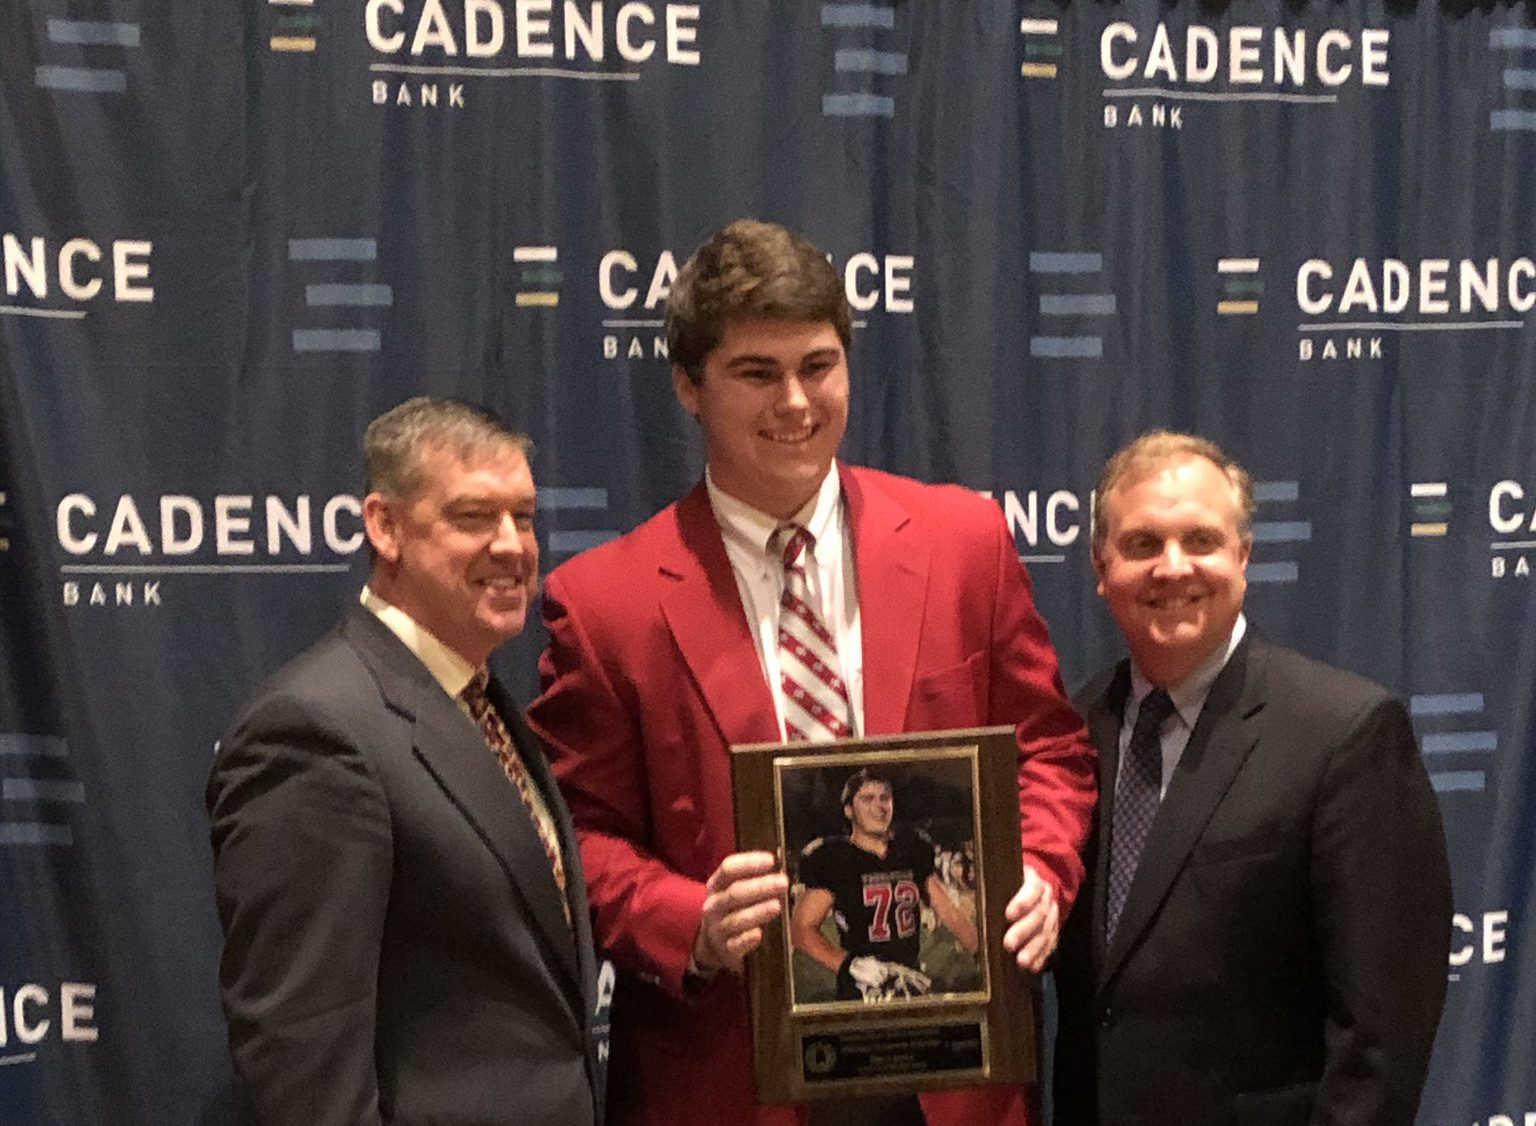 Pierce Quick wins second consecutive 7A lineman of the year